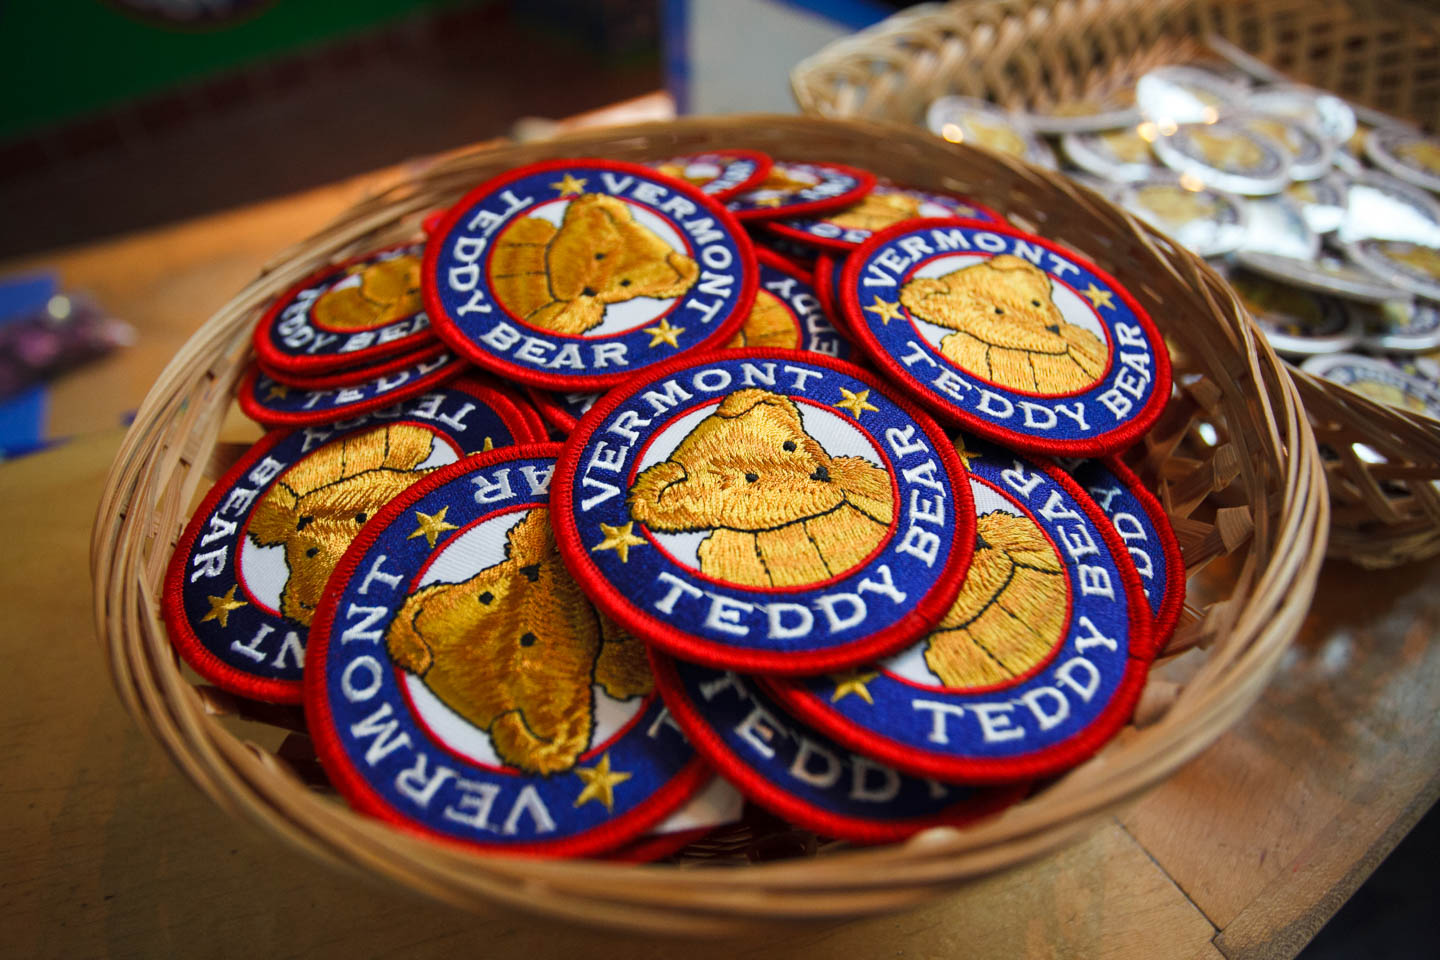 Vermont Tedy Bear patches